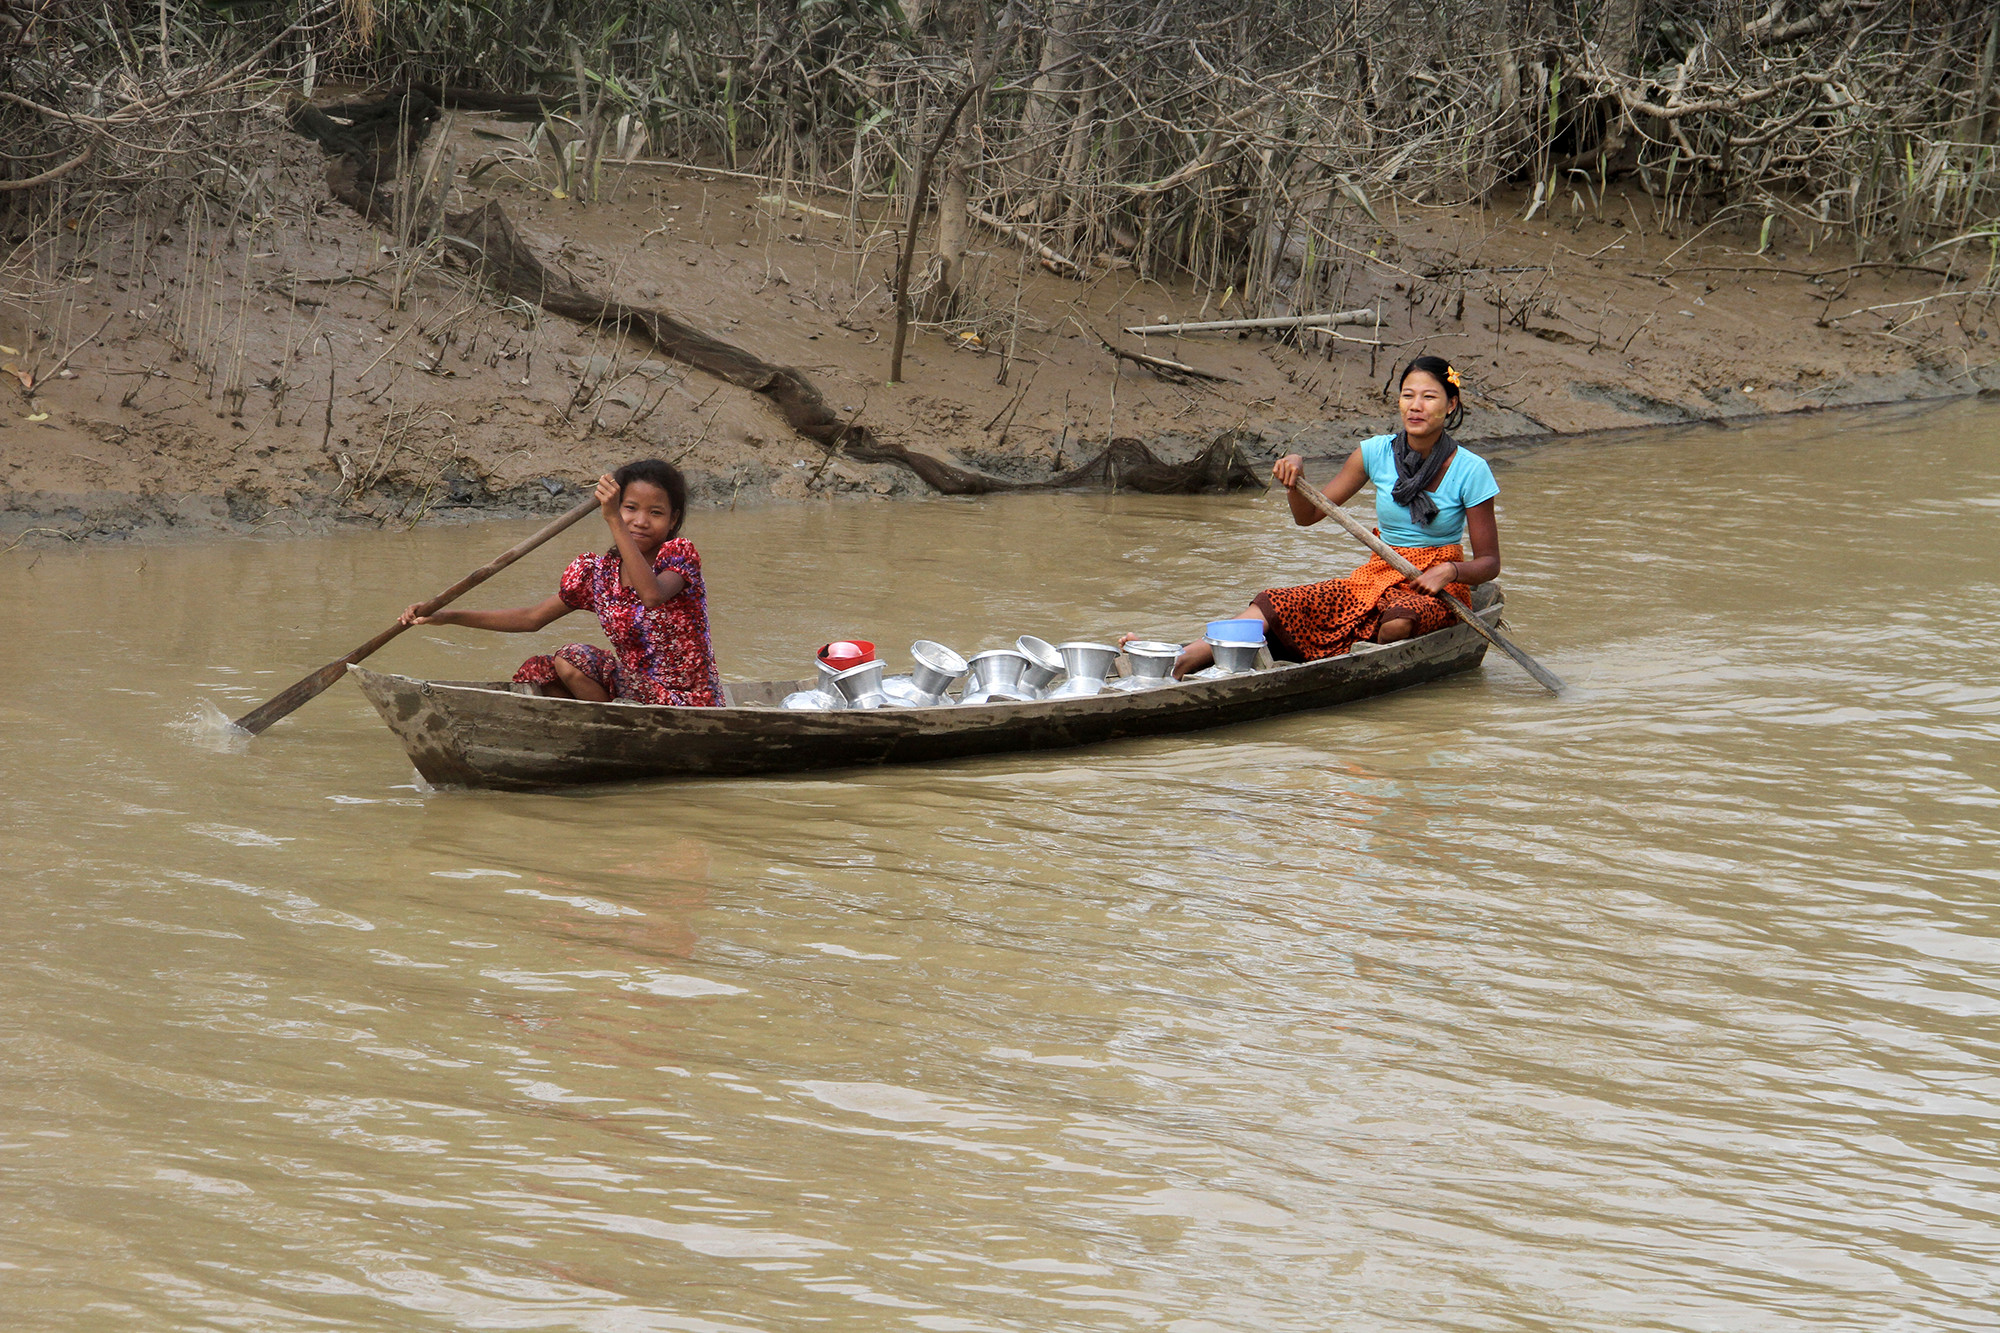 Girls paddle through flood water